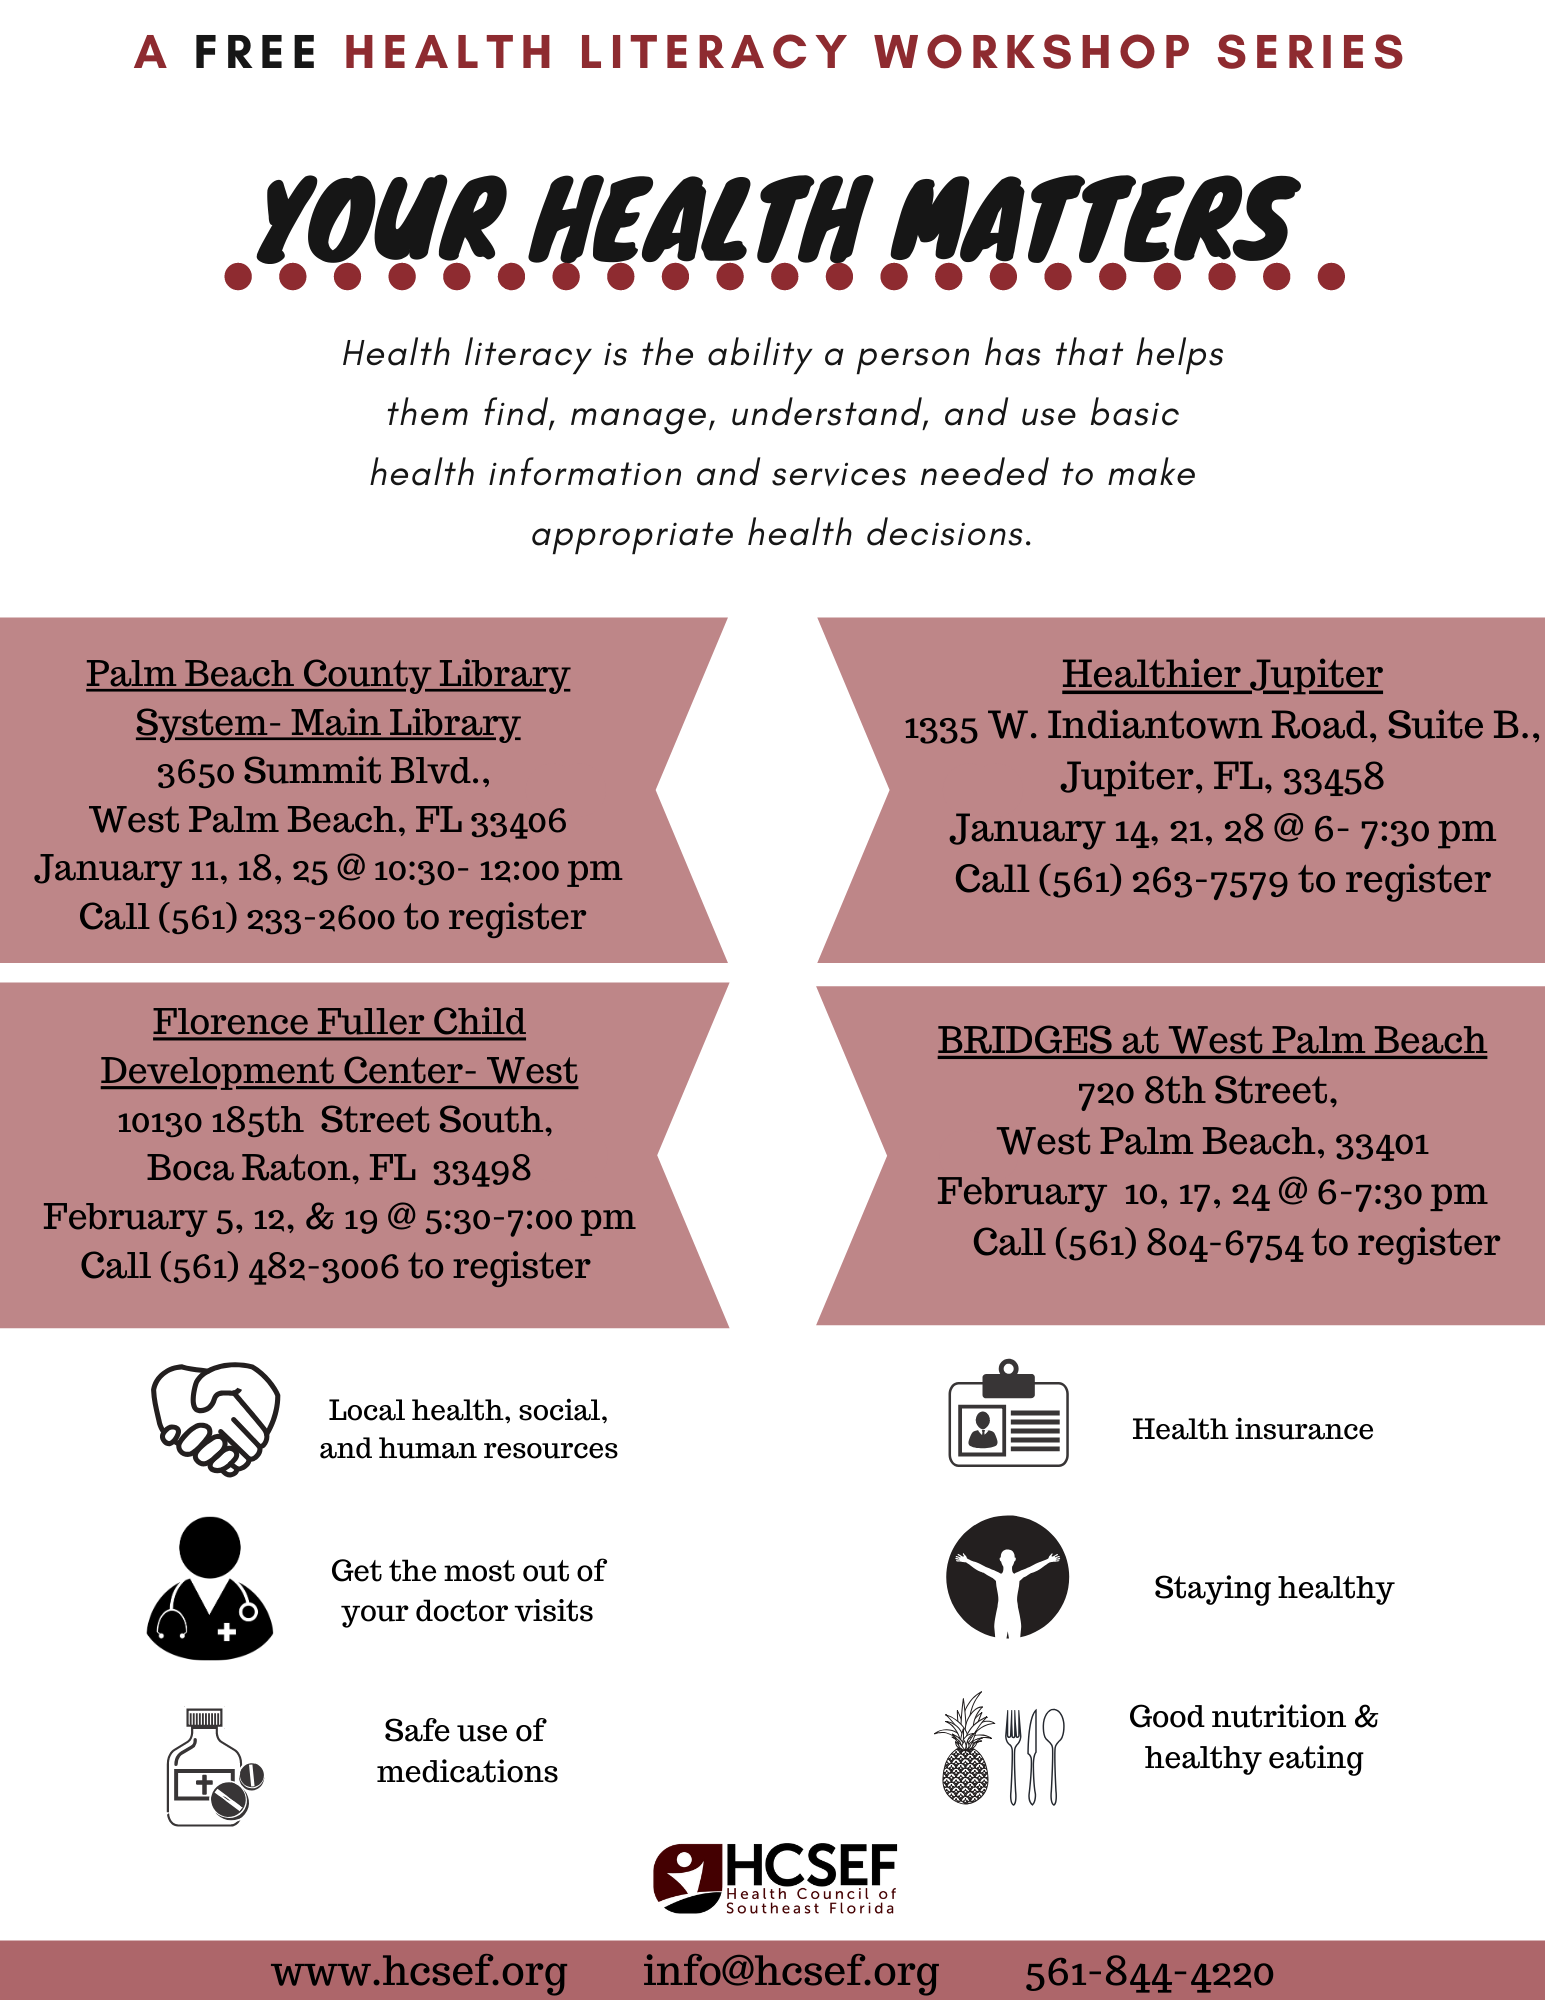 Your Health Matters - Health Literacy Workshops